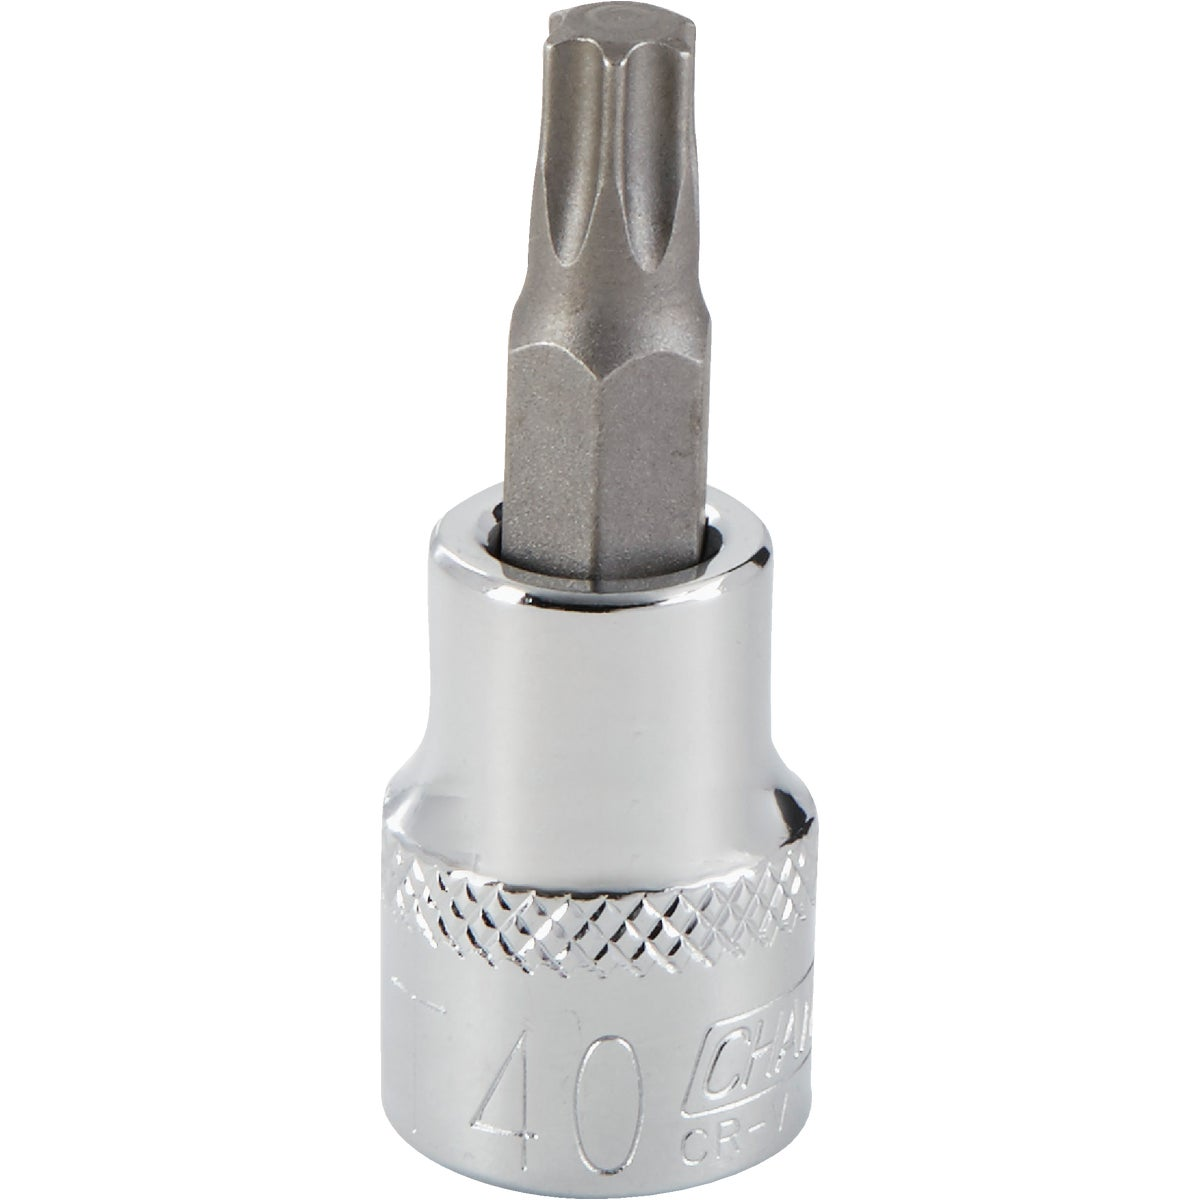 T40 TORX BIT SOCKET - 370029 by Bwt Inc